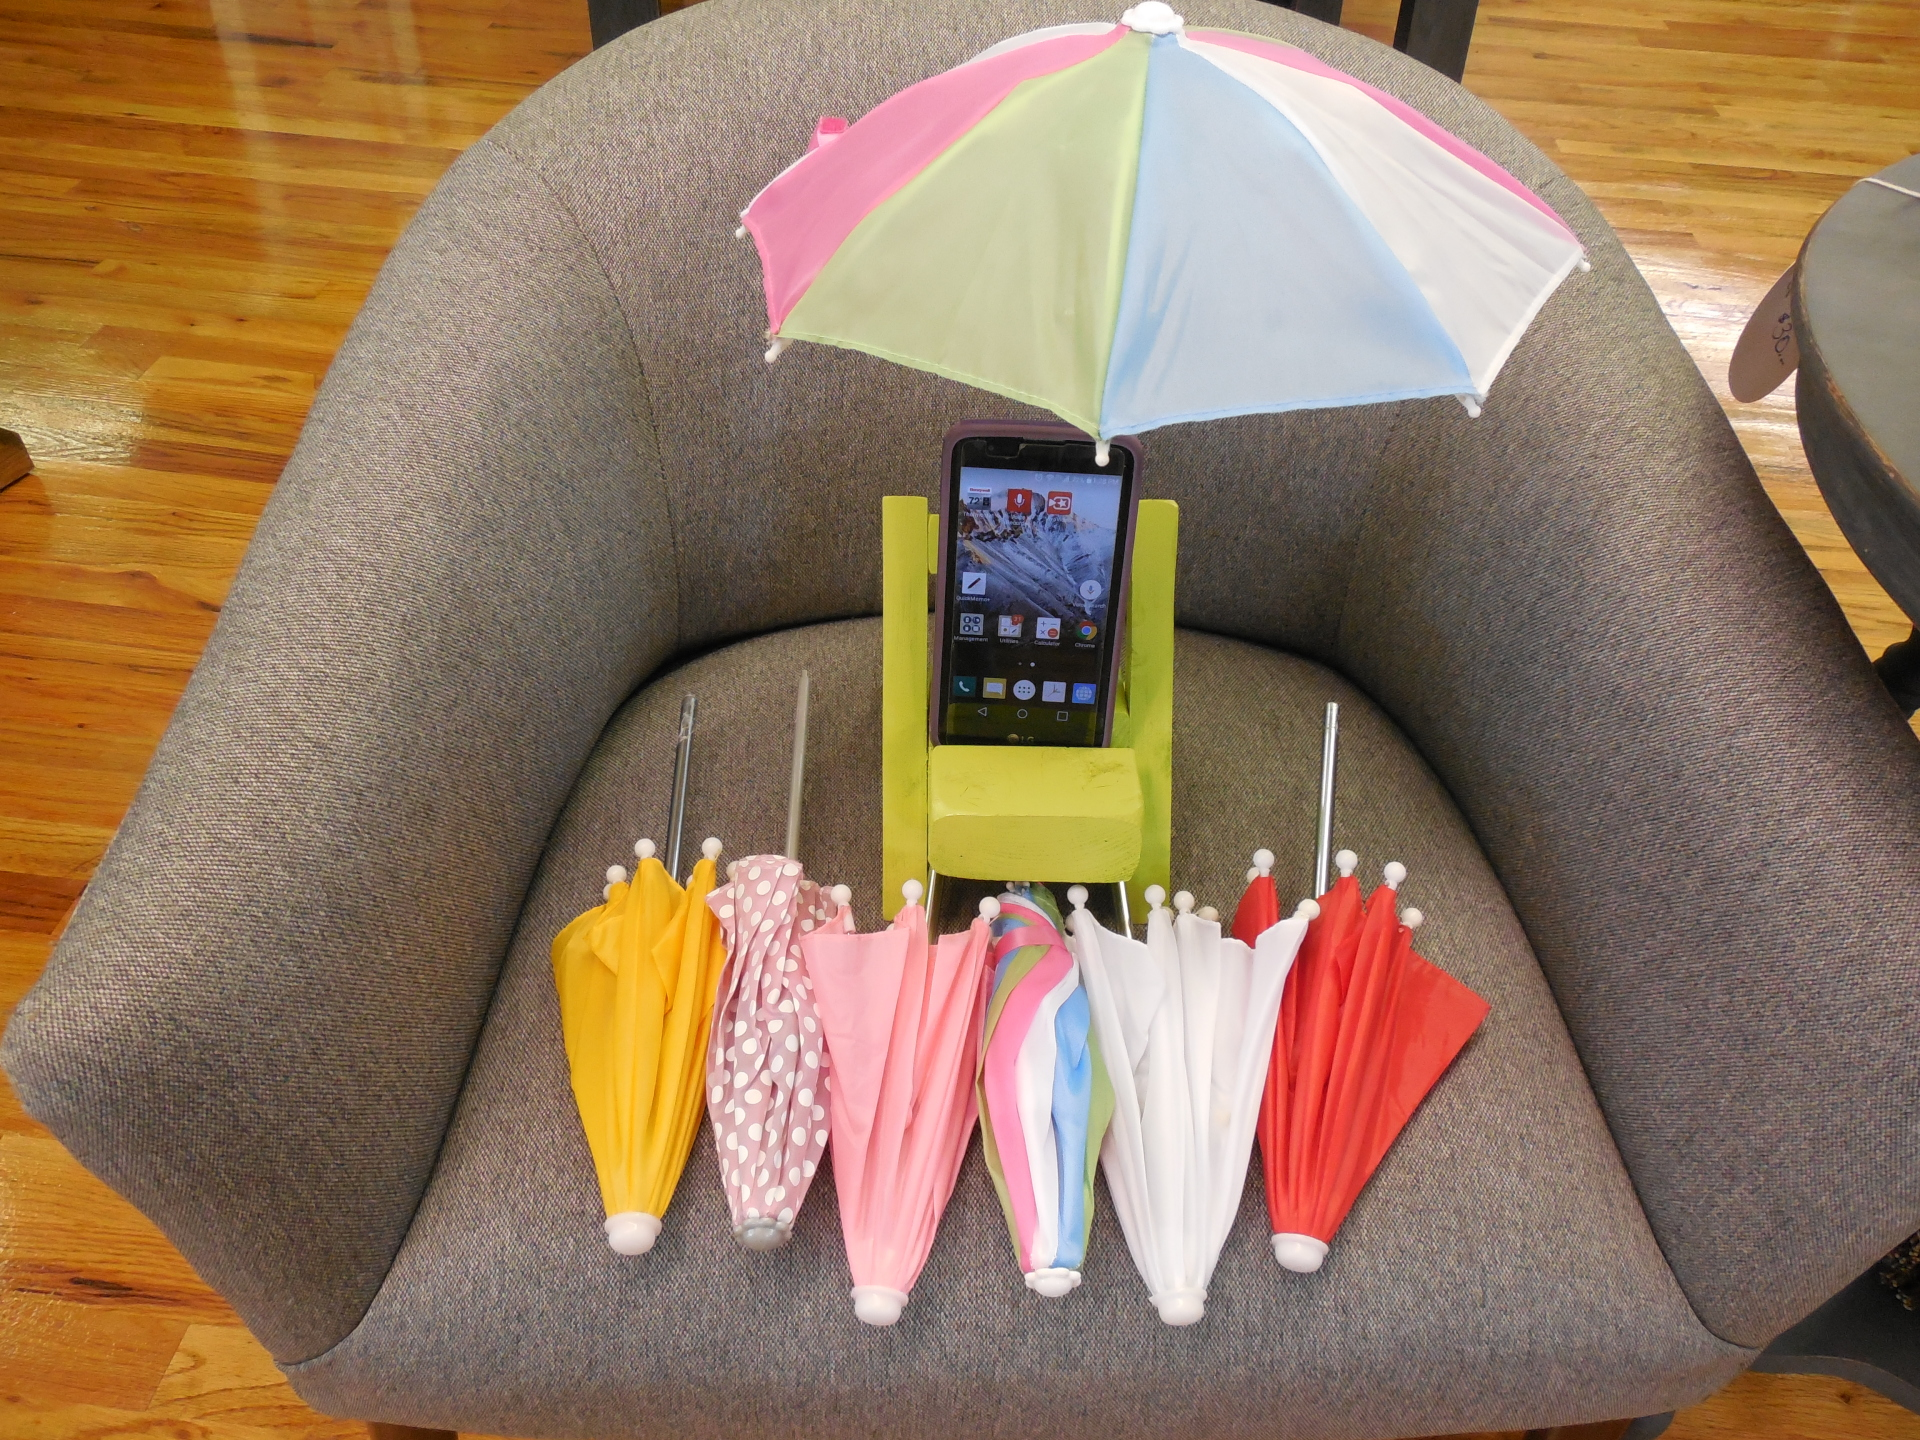 My_Chair Cell phone stand, Cell phone dock, tablet holder, easel Orr De